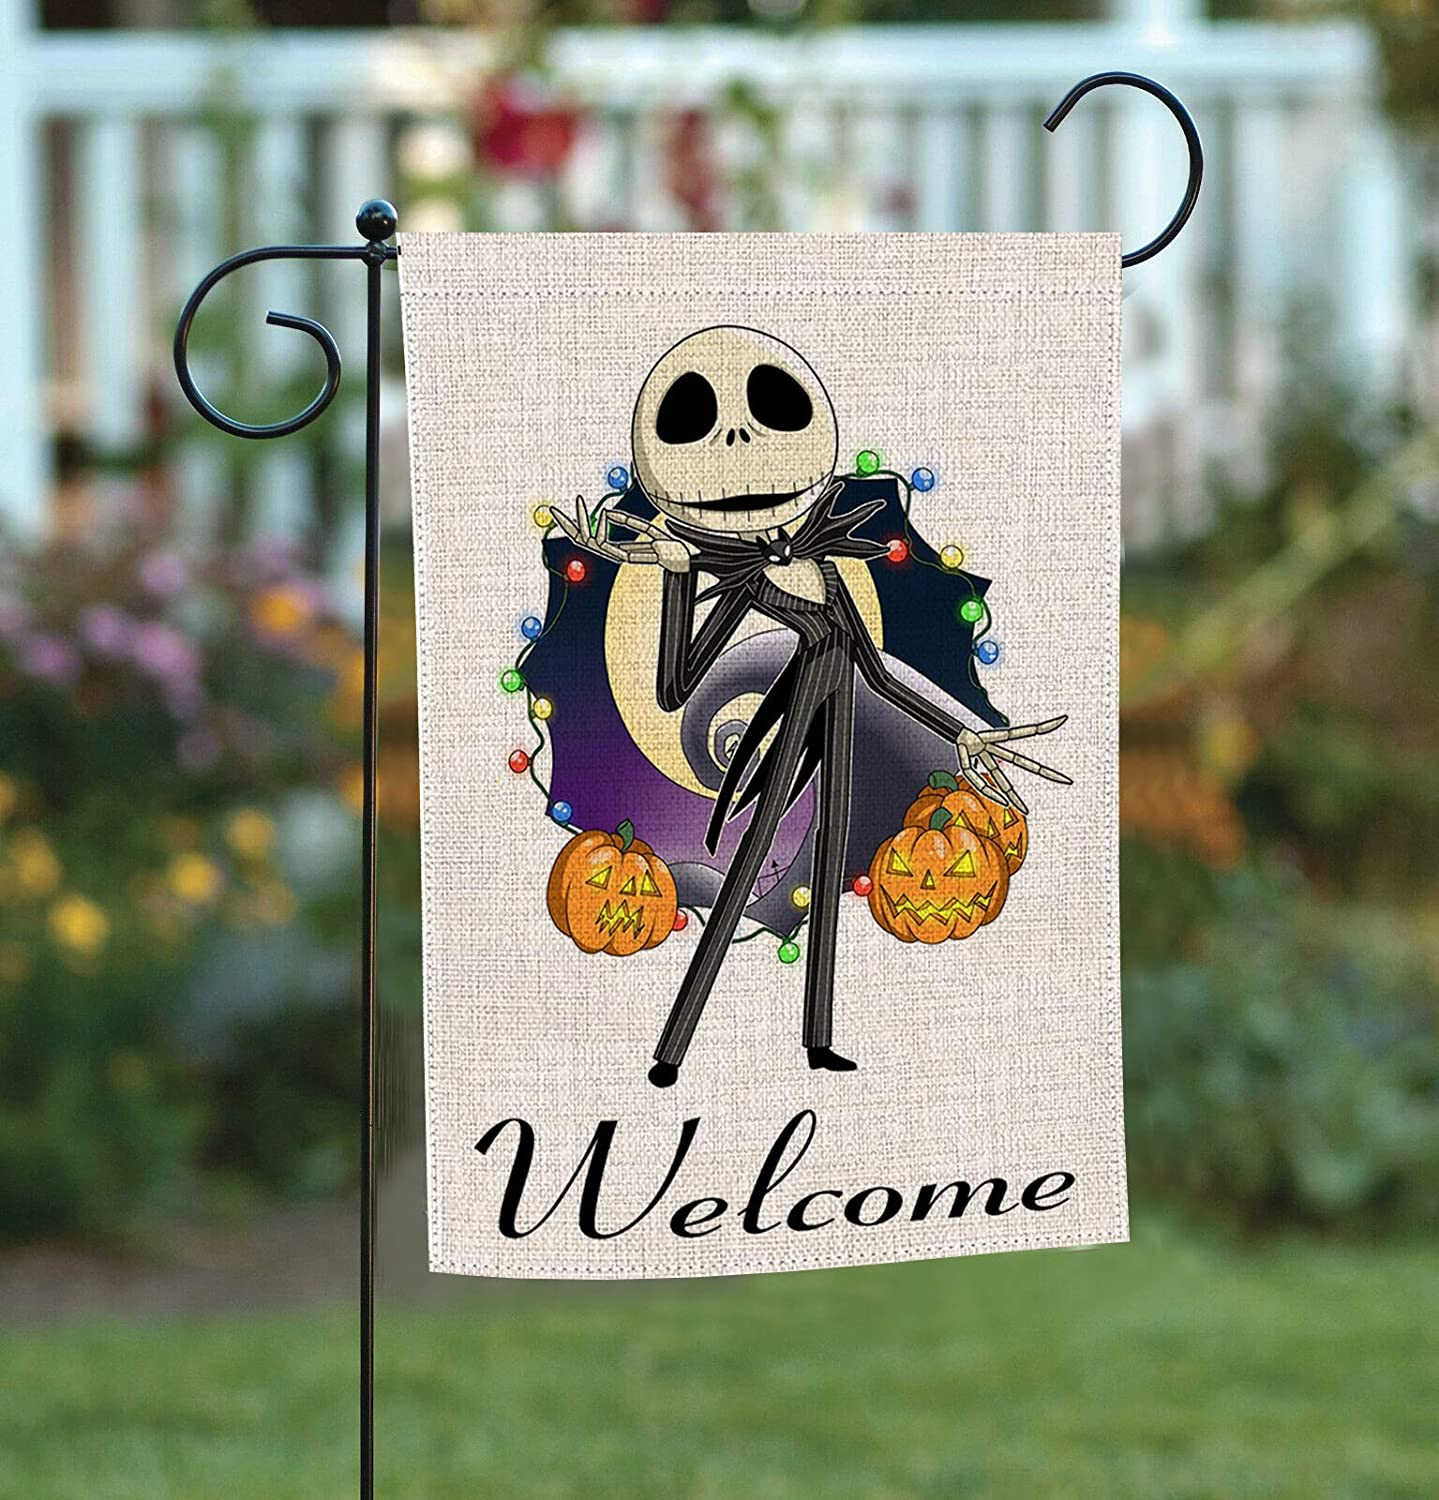 Bysincy Halloween Home Garden Flags Double Sided, Jack House Yard Decoration, America Patriotic Rustic Seasonal Yard Flags 12.5 x 18 Inch